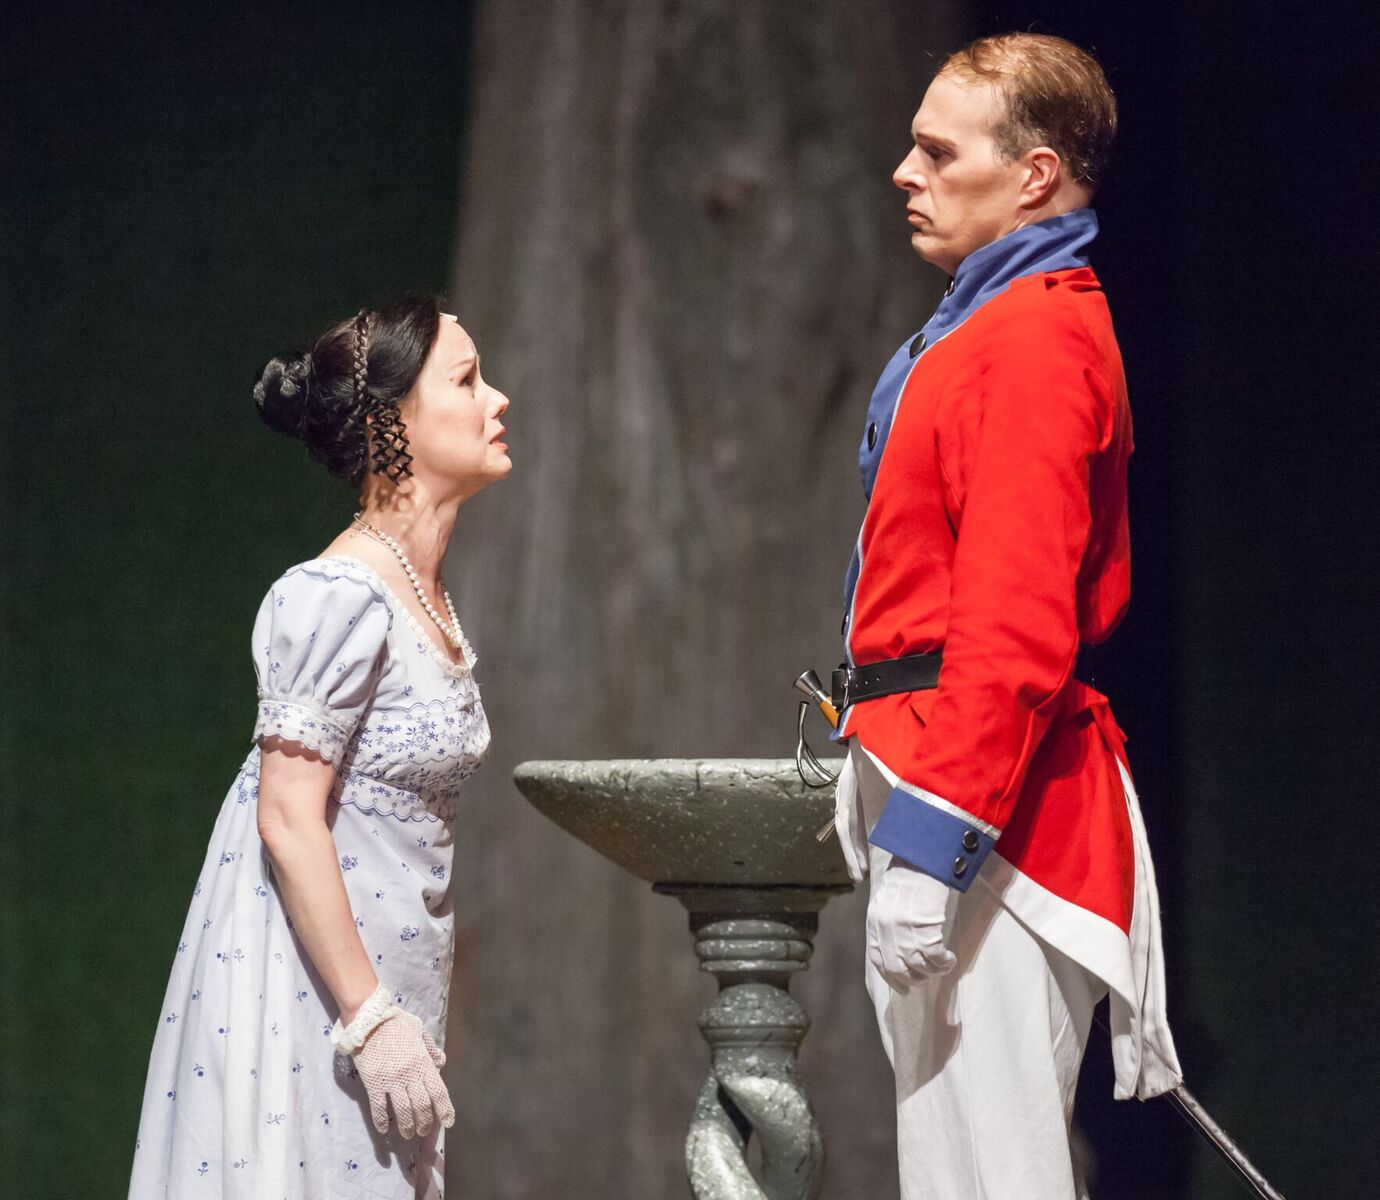 BWW Review: MUCH ADO ABOUT NOTHING at Kentucky Shakespeare